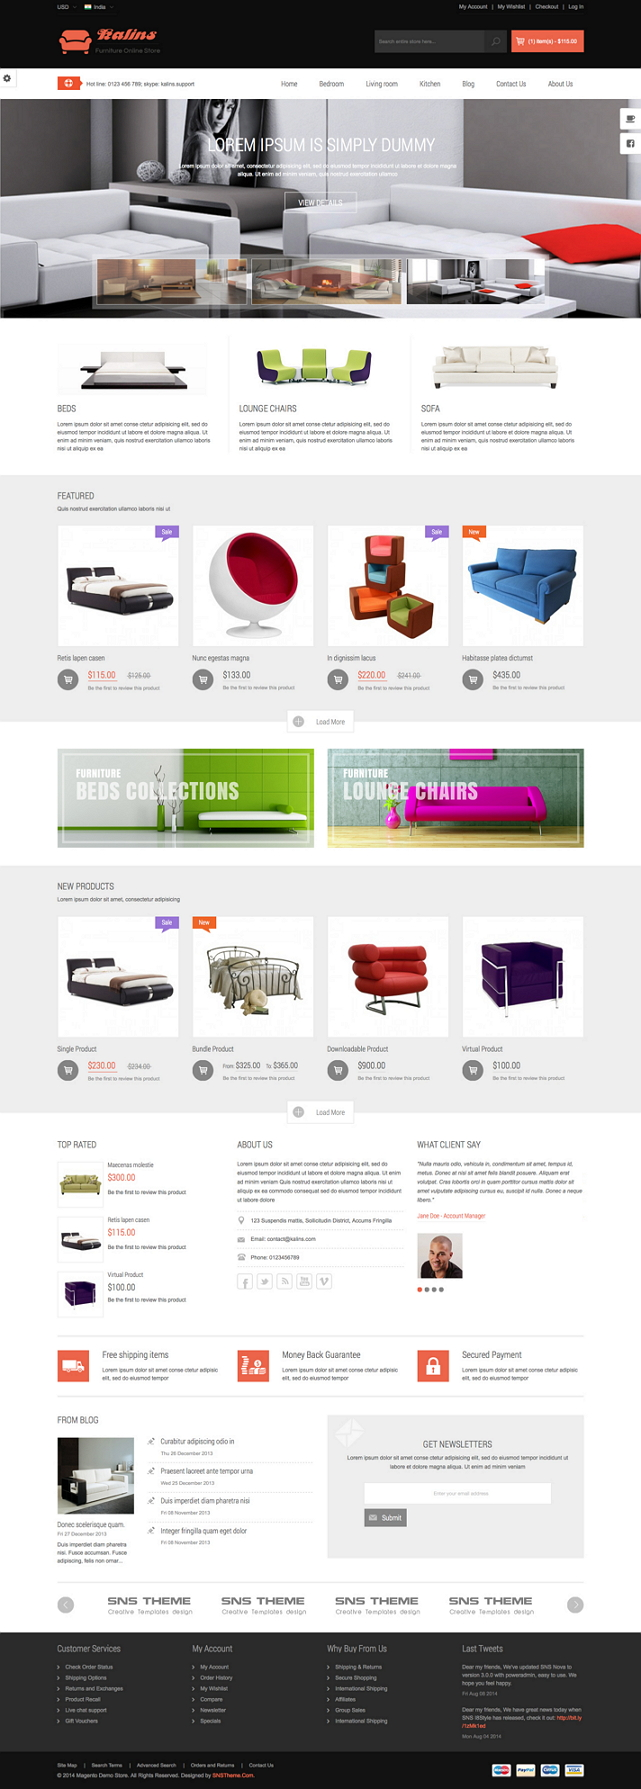 SNS Kalins is a Premium Responsive Magento Theme. A super neat design, it has 4 colors style and ...